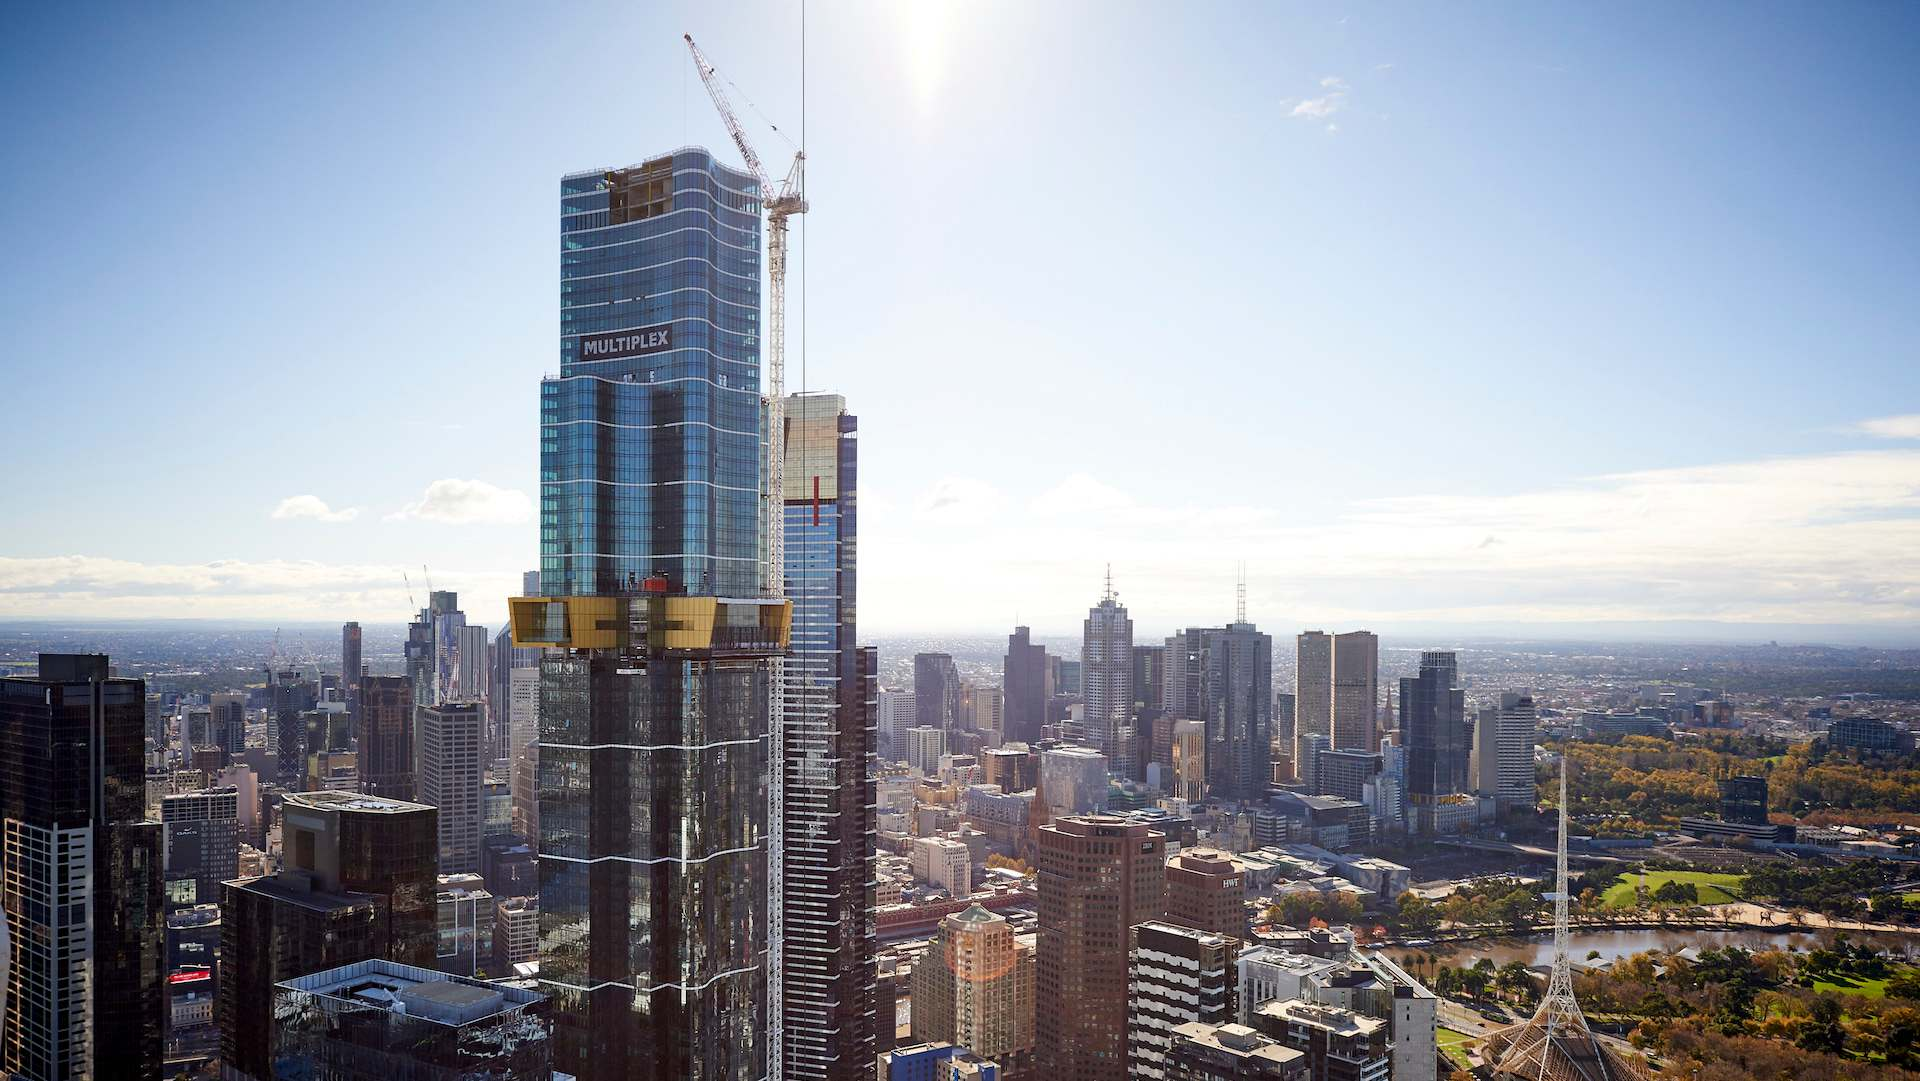 Melbourne's Australia 108 Tower Is Now Officially the Tallest Residential Building in the Southern Hemisphere